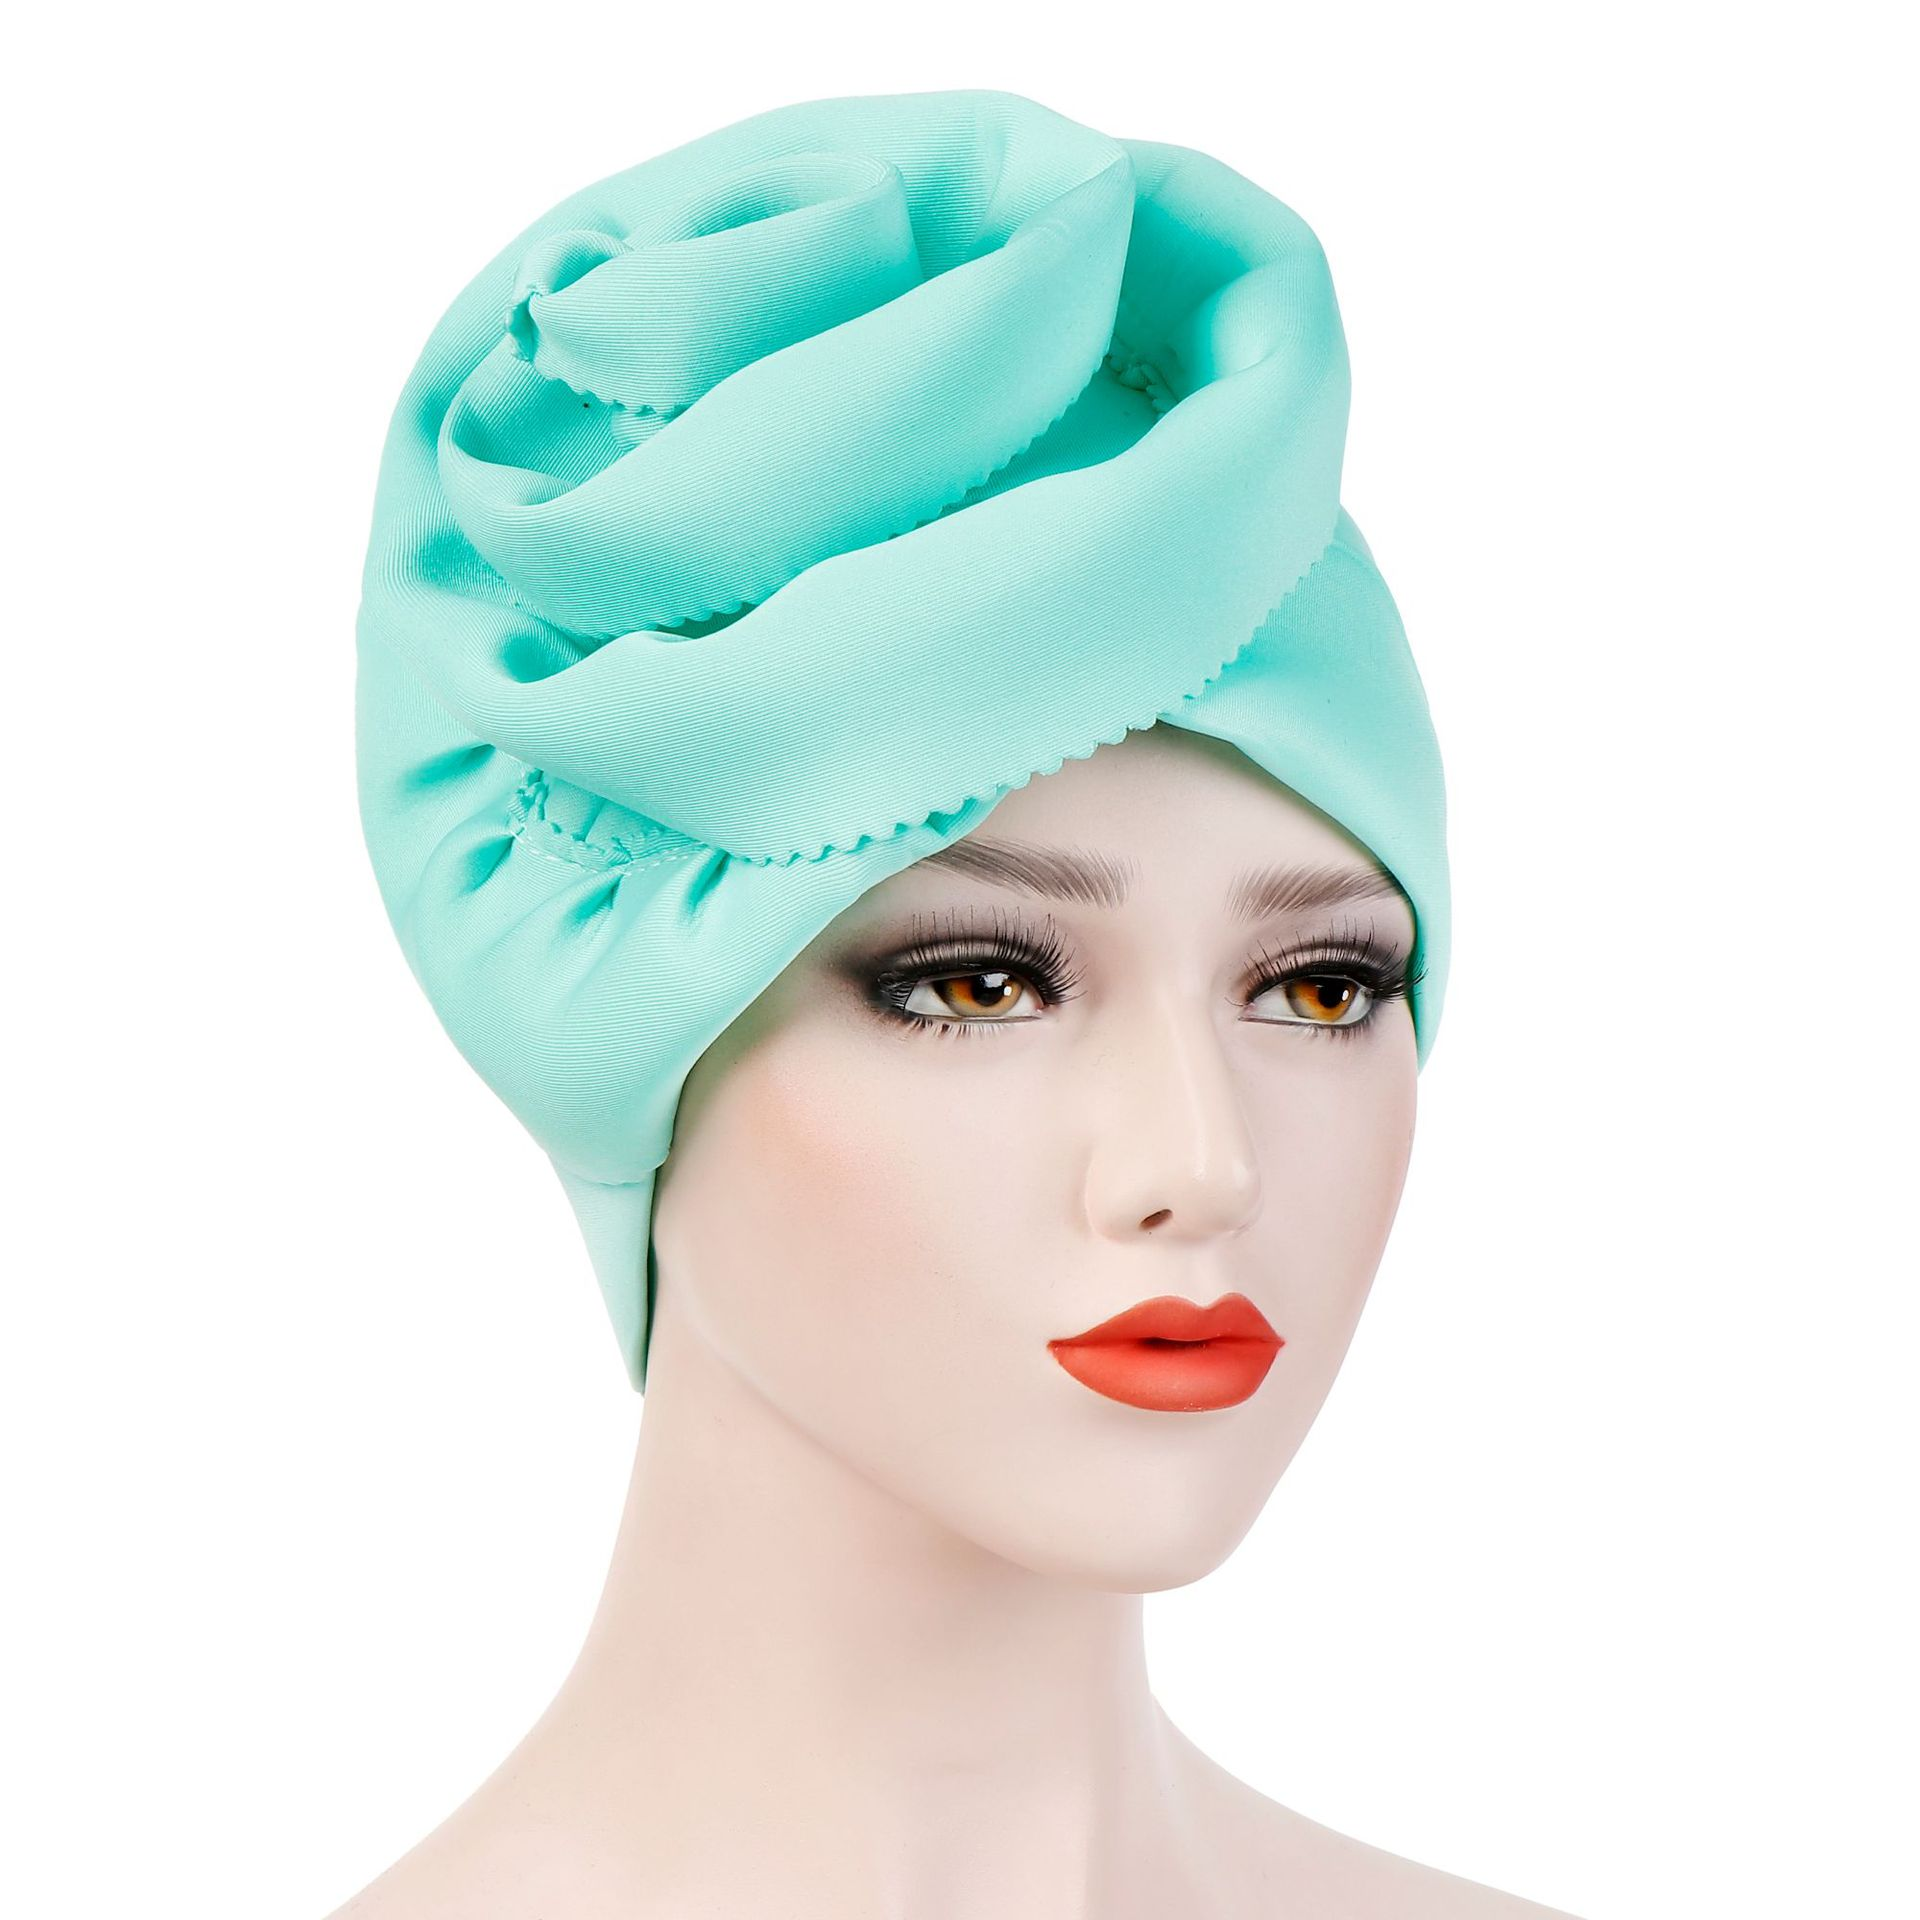 Luxury Cotton Turban Headwrap Women Muslim dress Hijab Hair Accessories Caps hijabs-in Islamic Clothing from Novelty & Special Use on Aliexpress.com | Alibaba Group